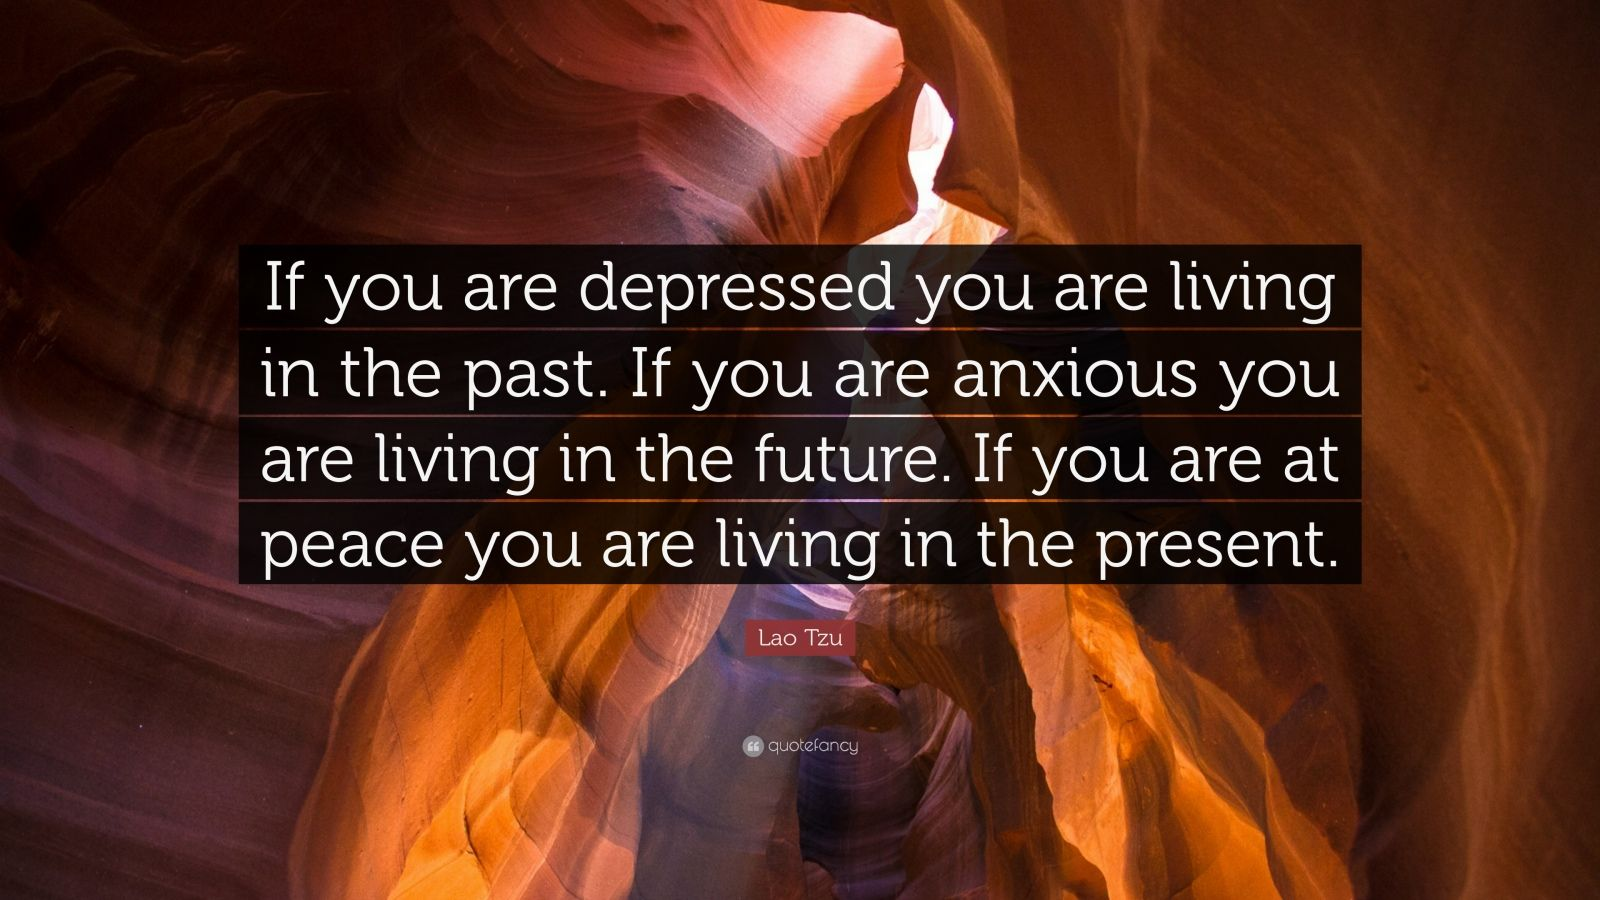 Lao Tzu If You Are Living in Past